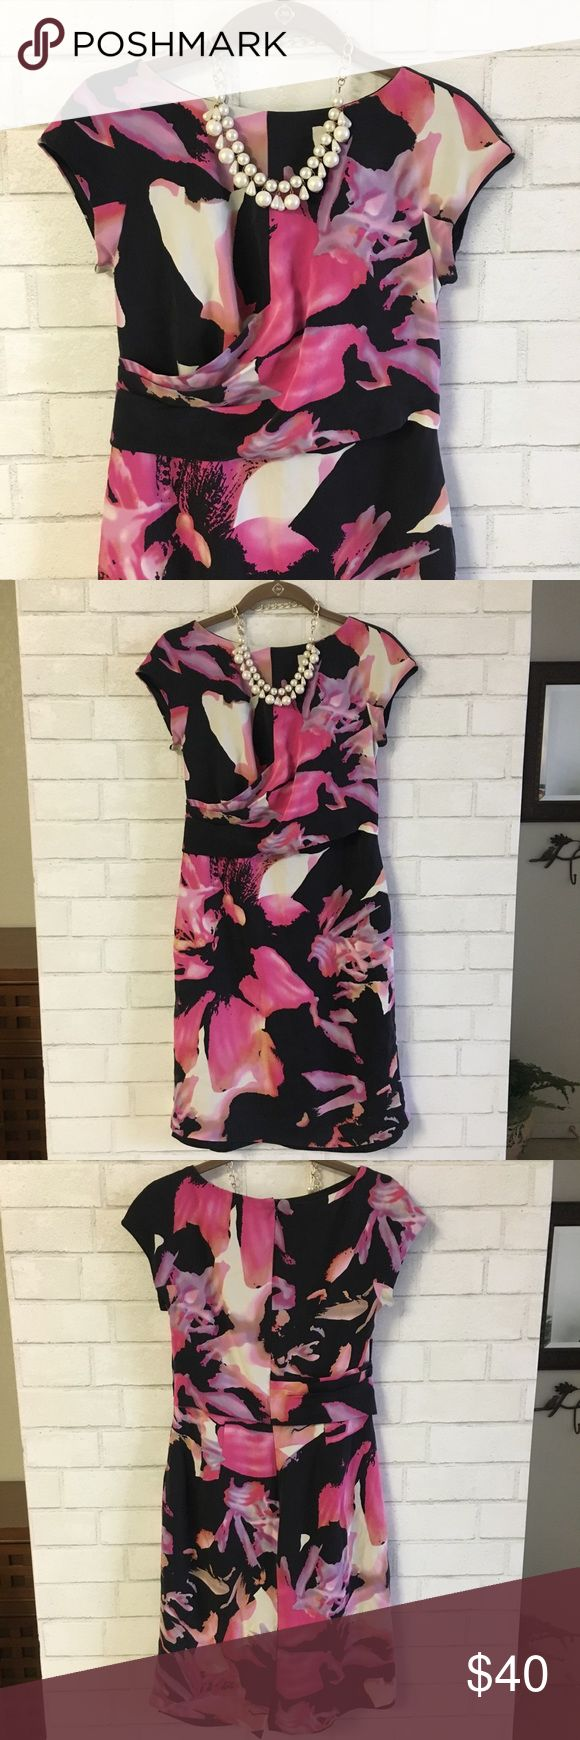 💜🌸🌺Stunning Ann Taylor Floral Dress🌺🌸💜 💜🌸🌺Stunning Ann Taylor Floral Dress🌺🌸💜 Perfect for any occasion or weekend fun! Has a beautiful Black, Pink, Purple, Lavender color scheme. This dress is lined, with pretty cap sleeves, a gathered waistline, zipper back closure and a slit in the back. Great condition. Comes from a smoke-free, pet-free home:)💕 Ann Taylor Dresses Midi